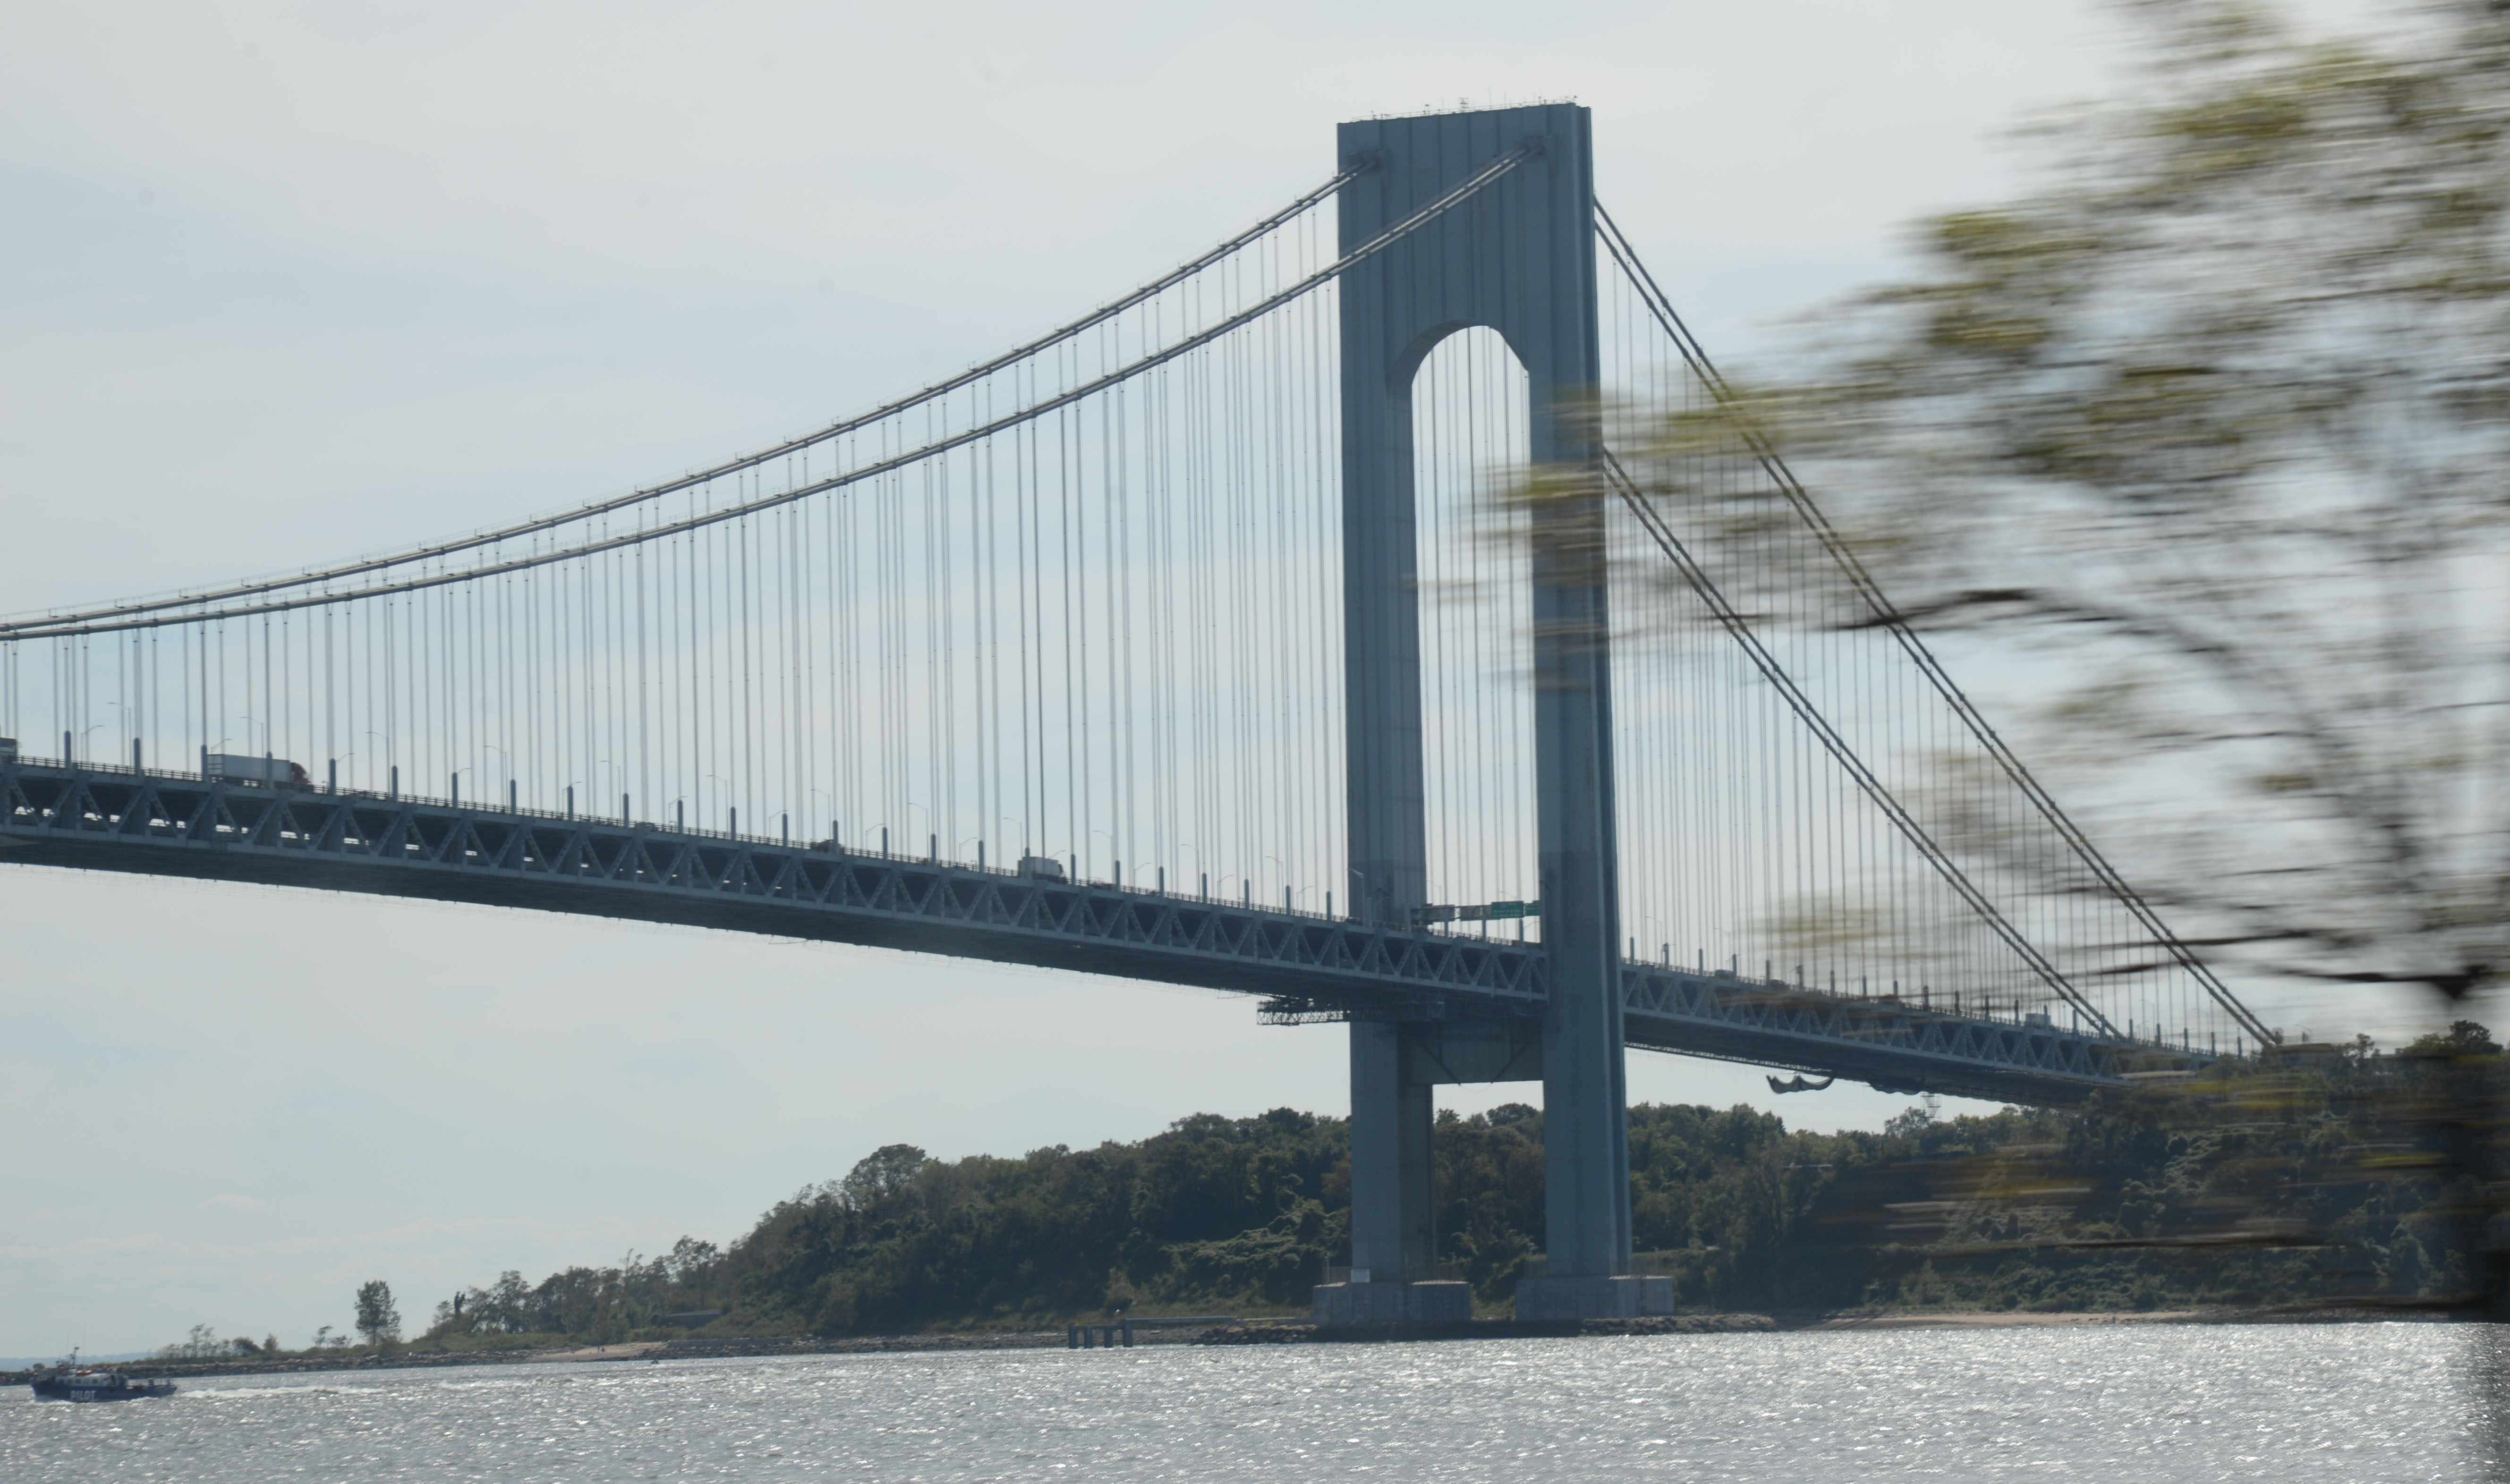 12-year-old Queens boy takes family car on a joyride to Delaware border